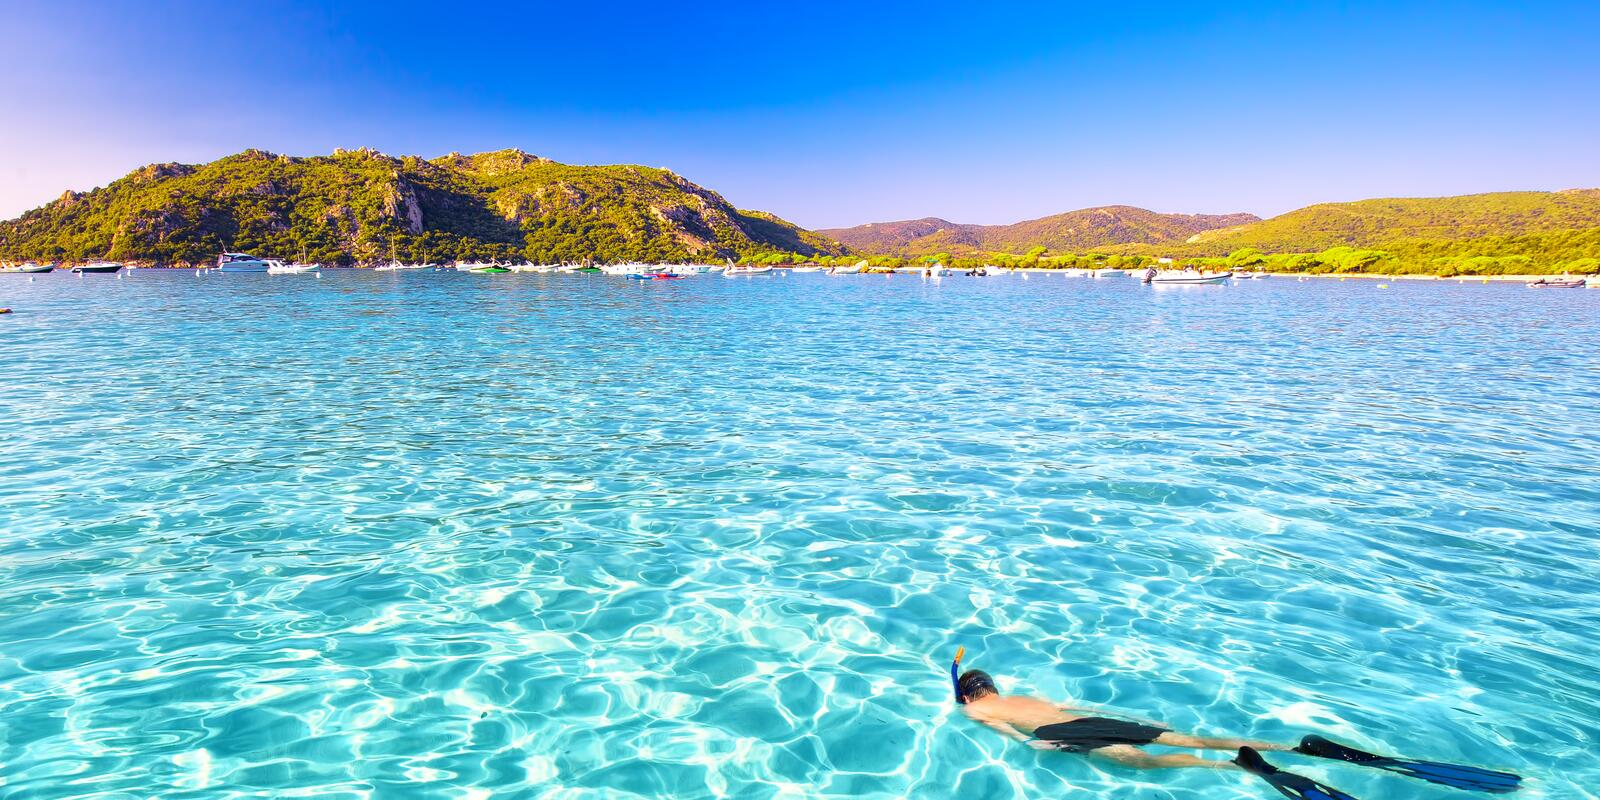 I challenge you to forget this weekend! Impossible, Elba Island is too beautiful!